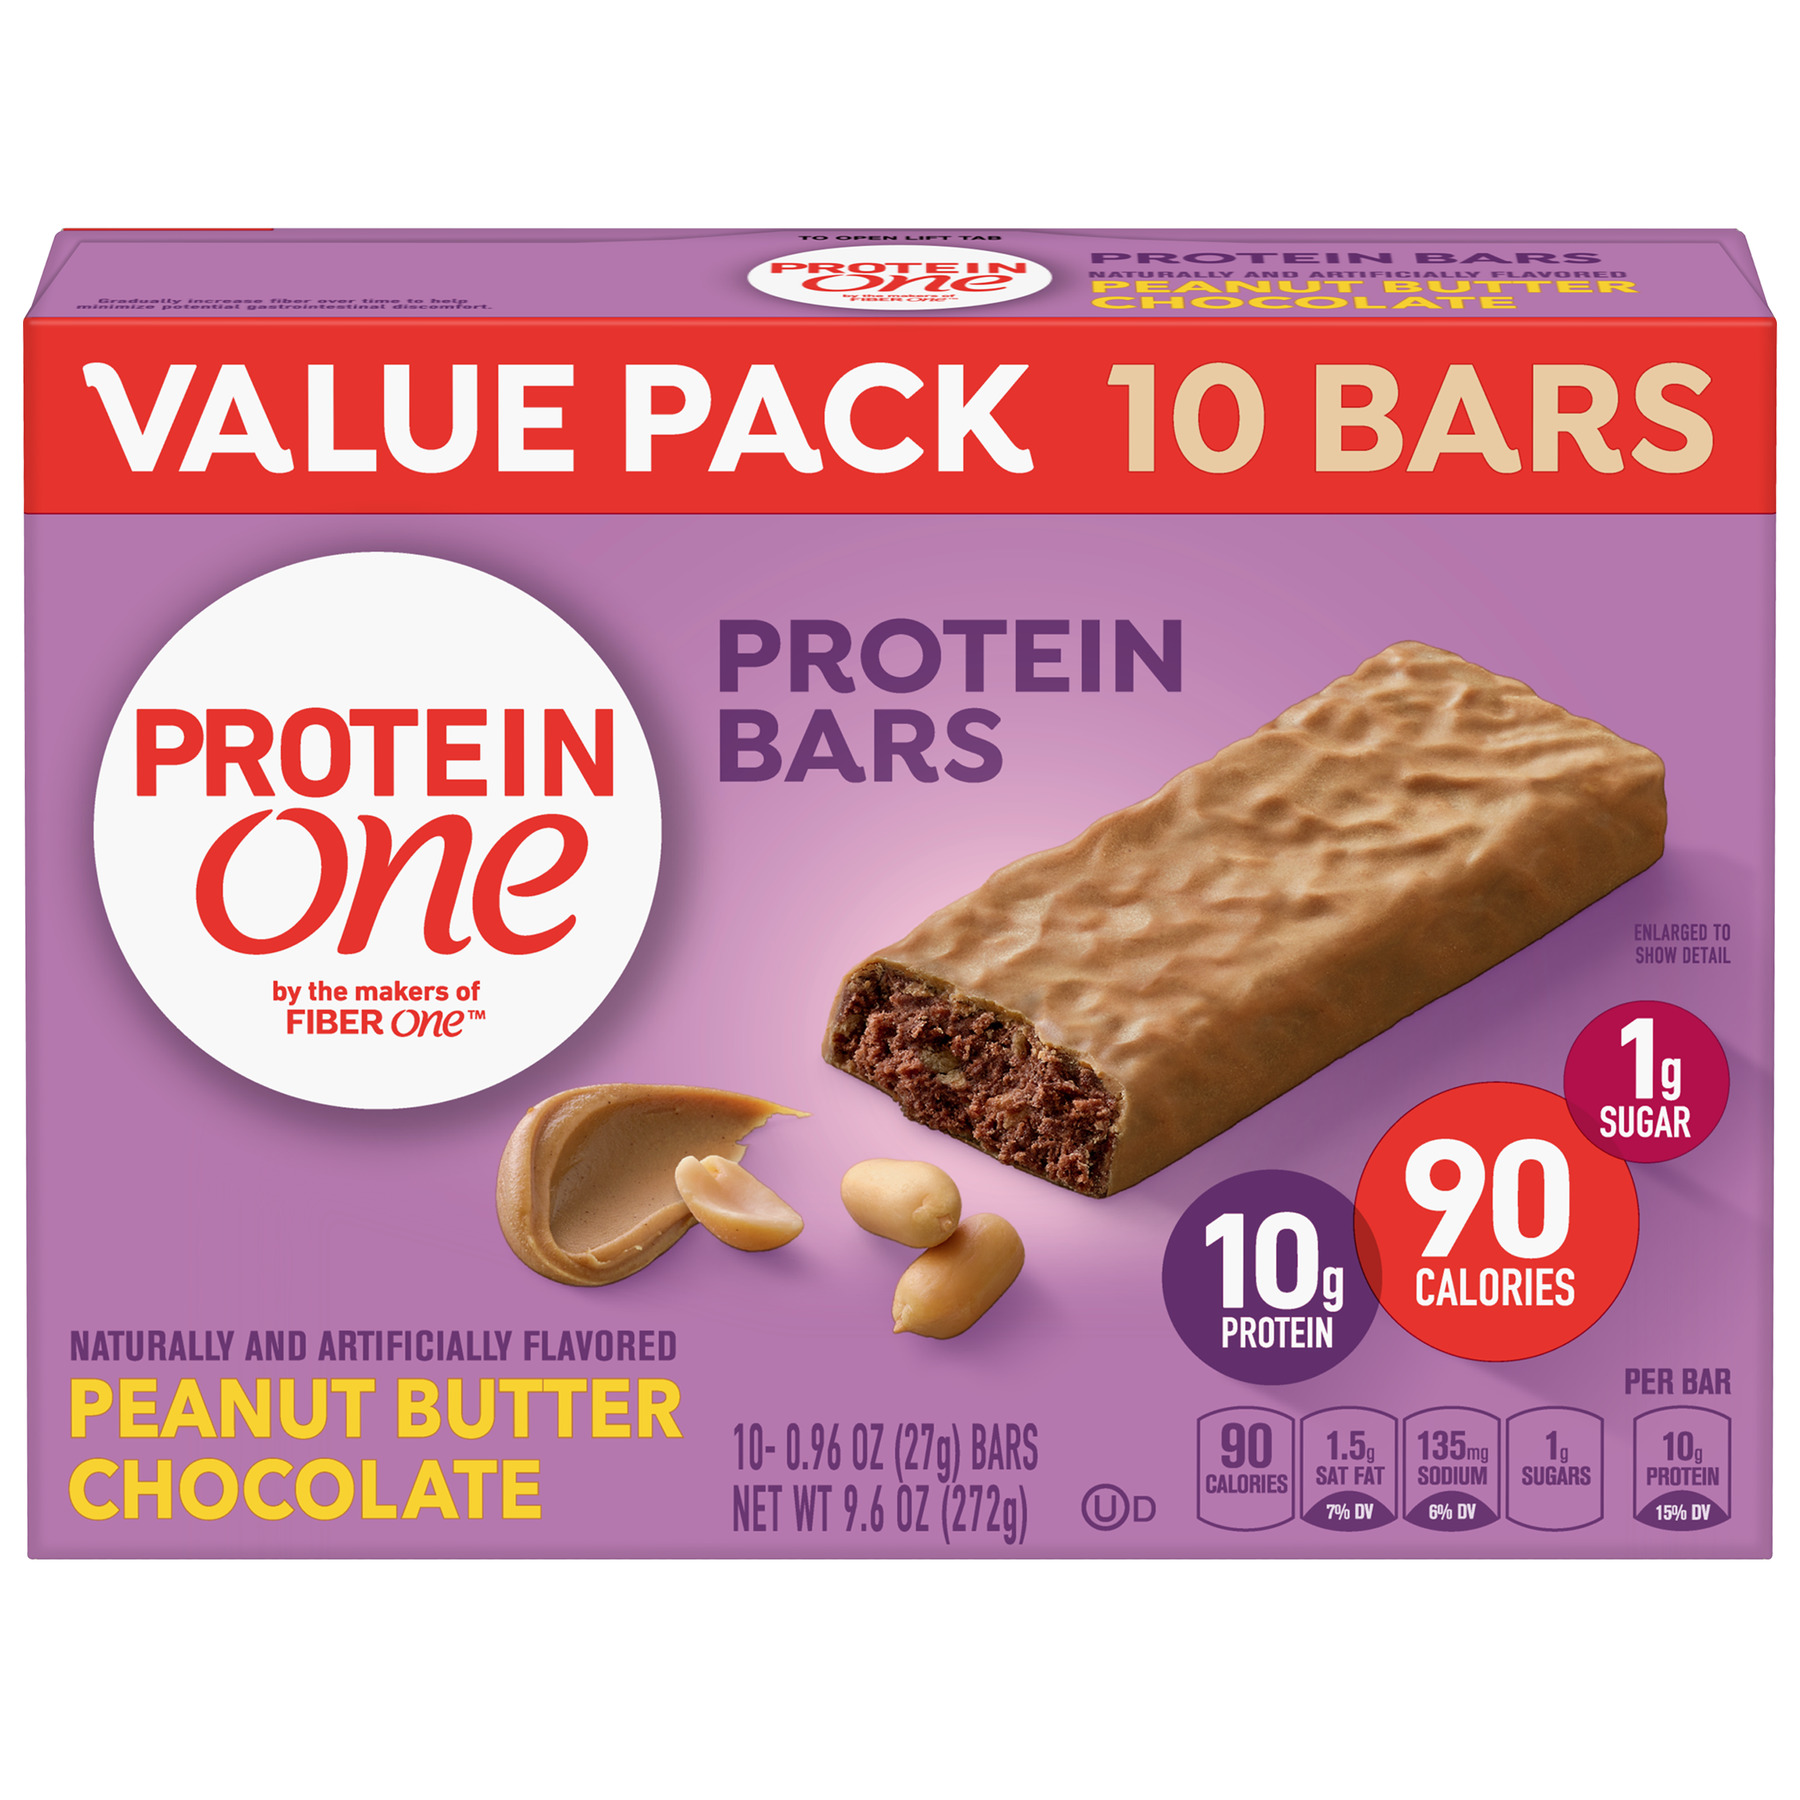 Protein One 90 Calorie Peanut Butter Chocolate 10 ct, 9.6 oz